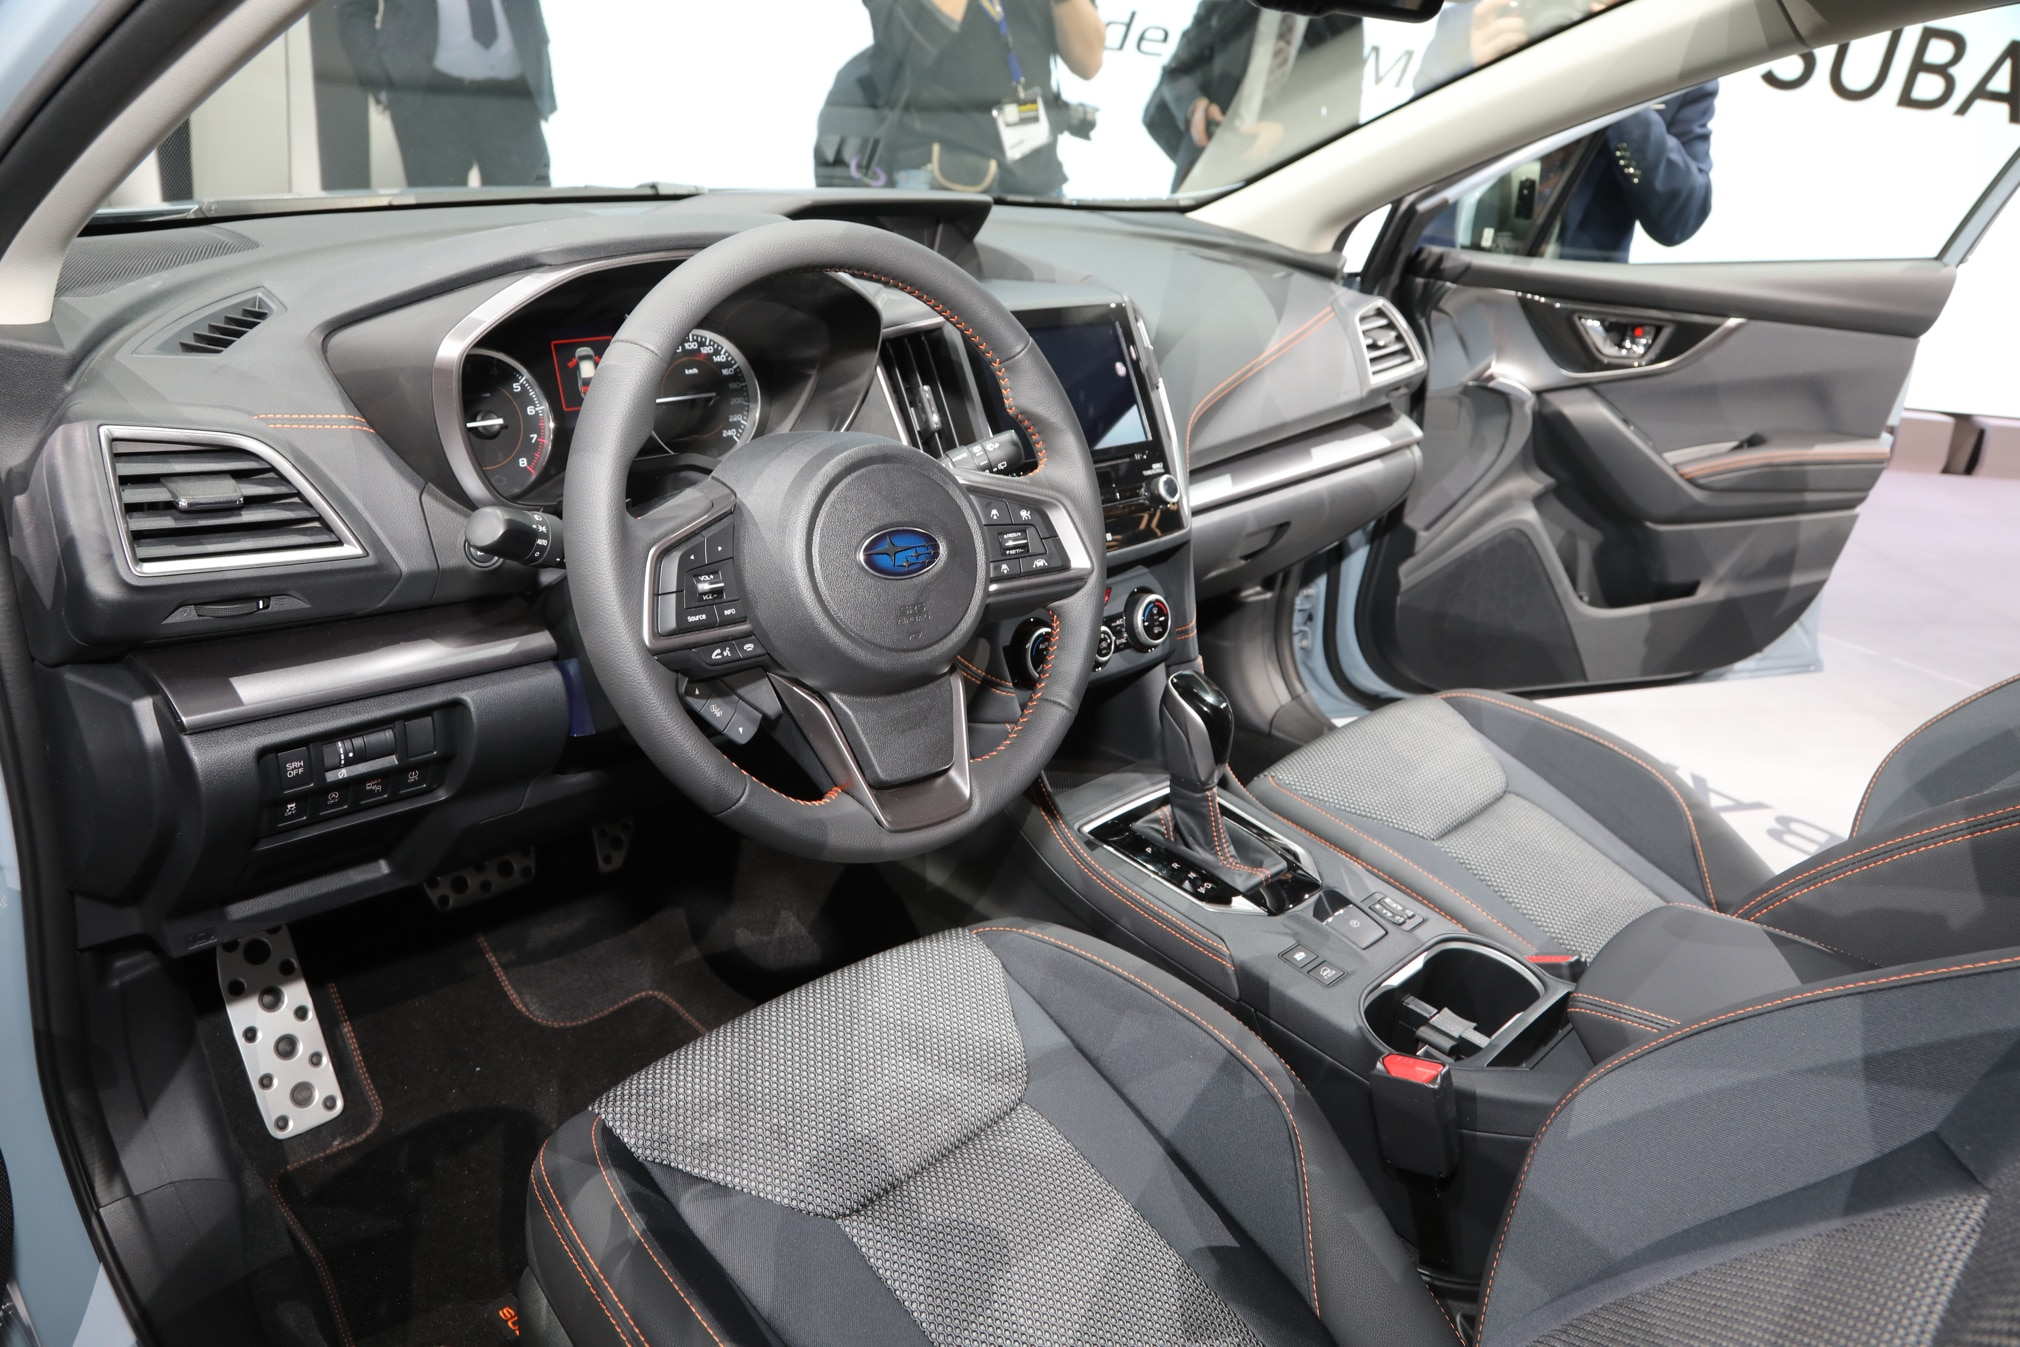 2018 subaru crosstrek debuts in geneva automobile magazine for Subaru crosstrek 2017 interior